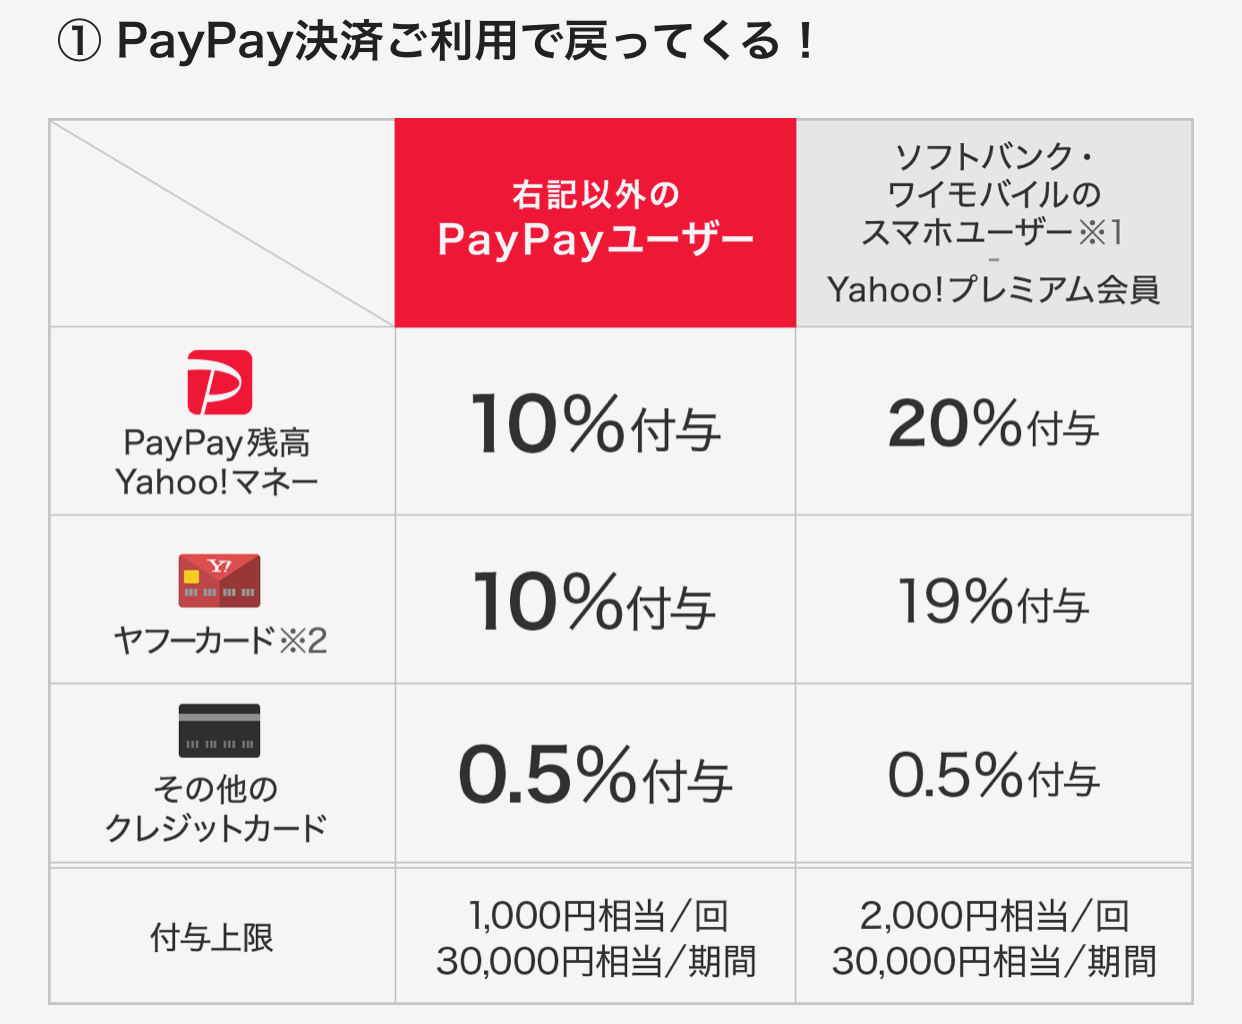 PayPay 6gatsudragstore 04